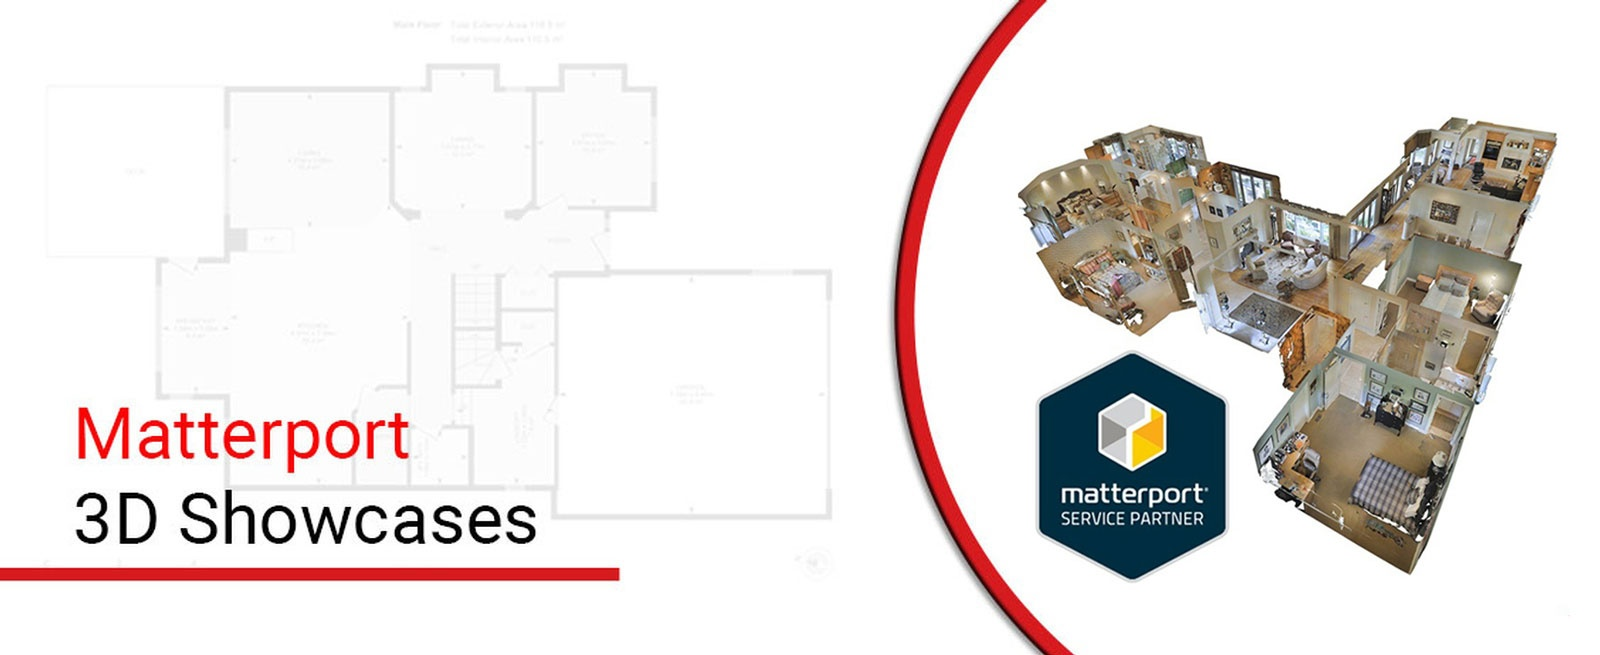 Matterport 3D Showcases - Square Feet Photography and Floor Plans